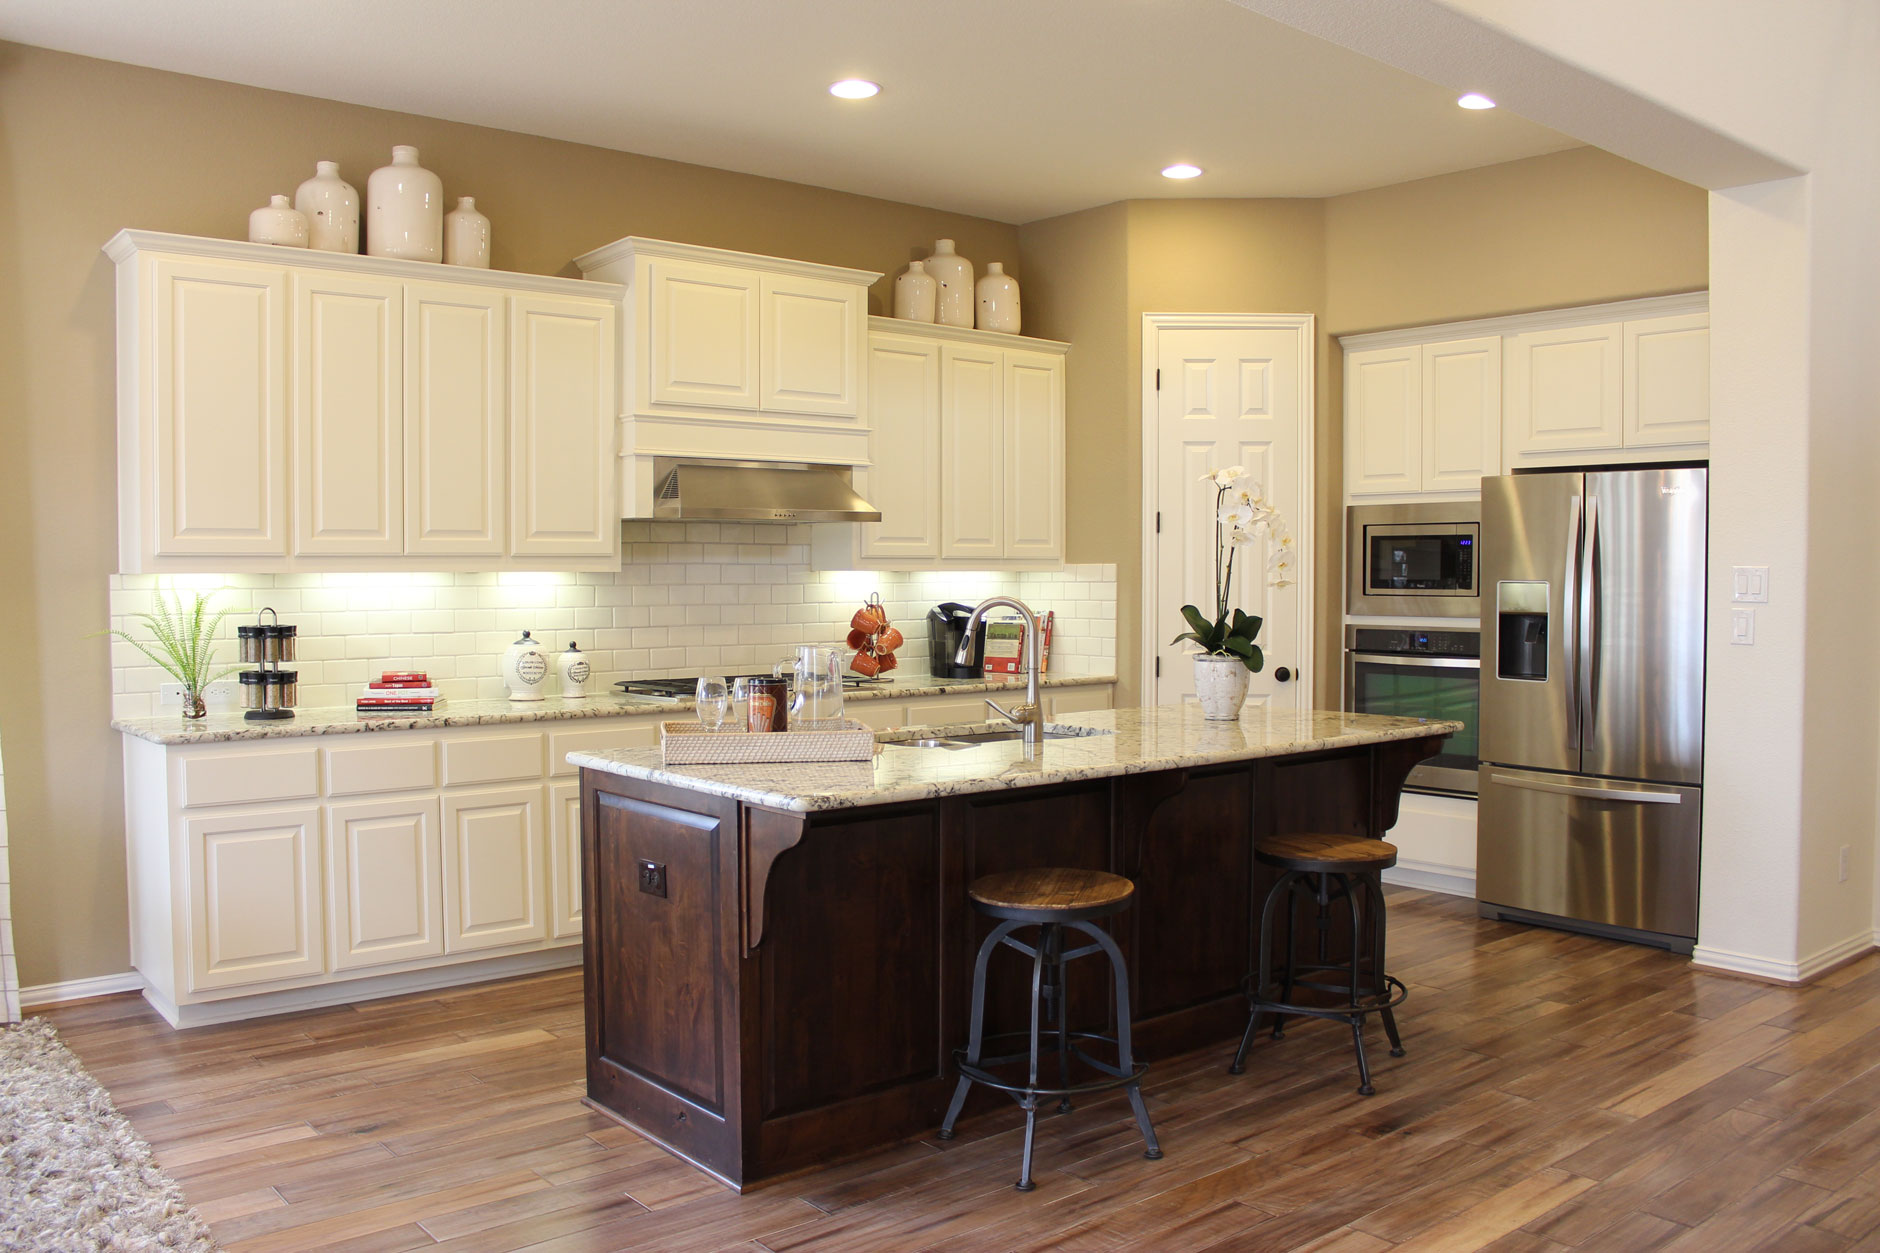 How to choose flooring that compliments cabinet color for Kitchen wall island